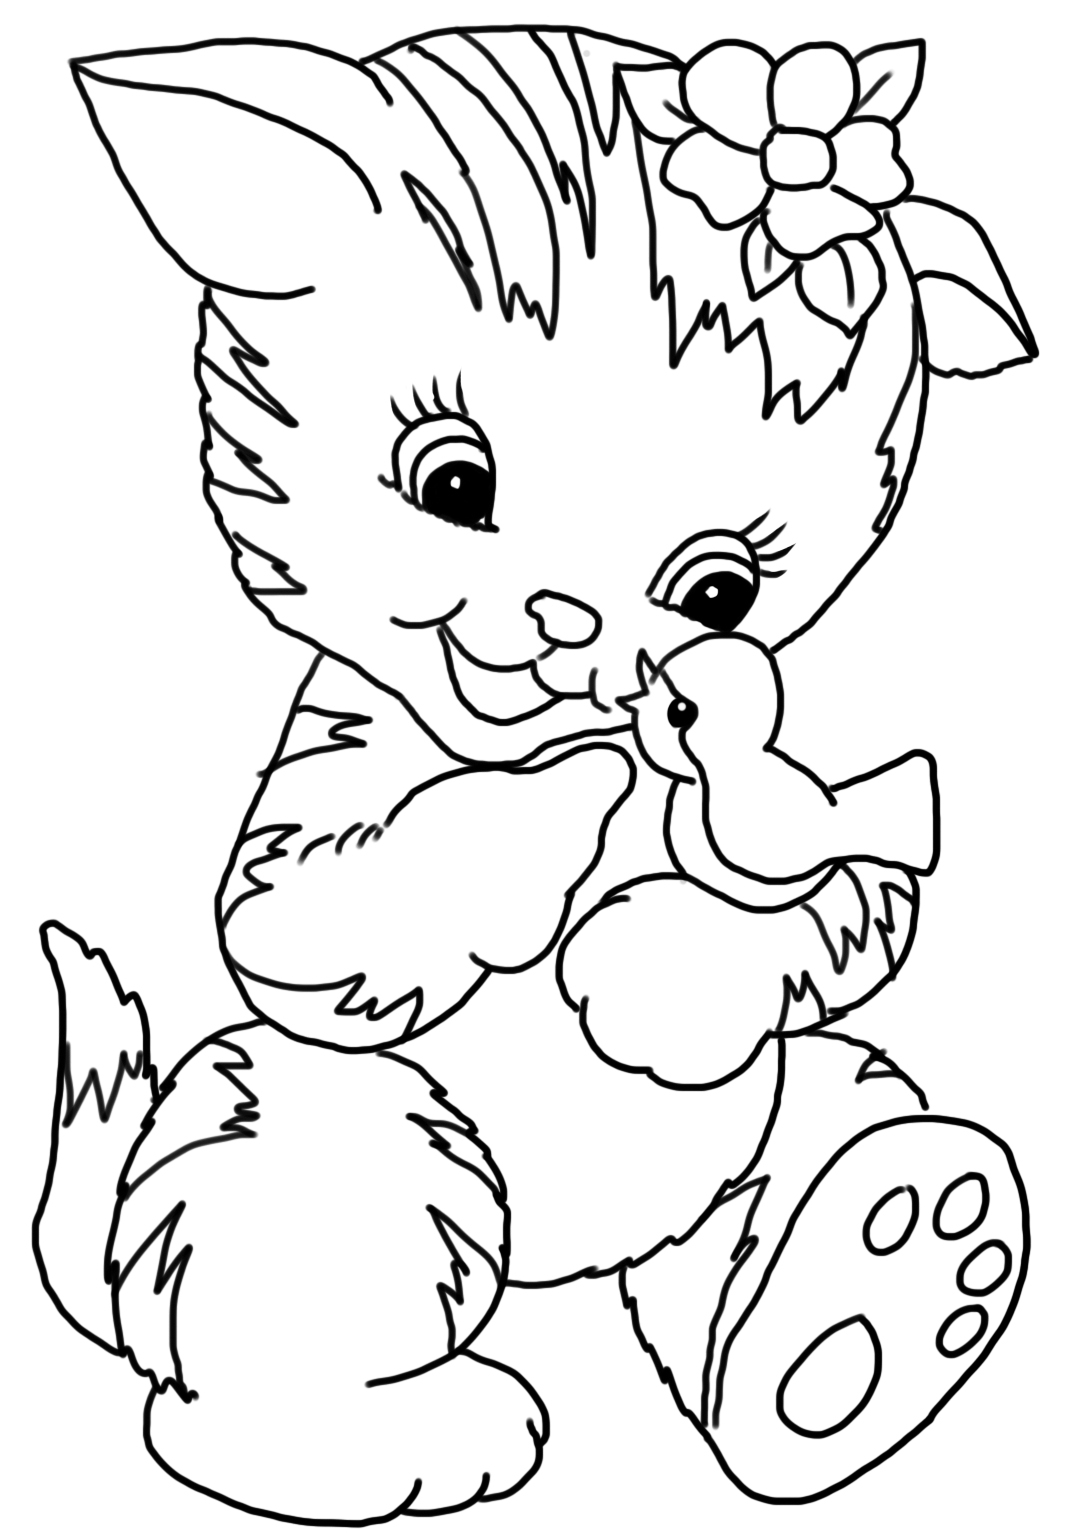 colouring pages cats colouring pages cats colouring cats pages